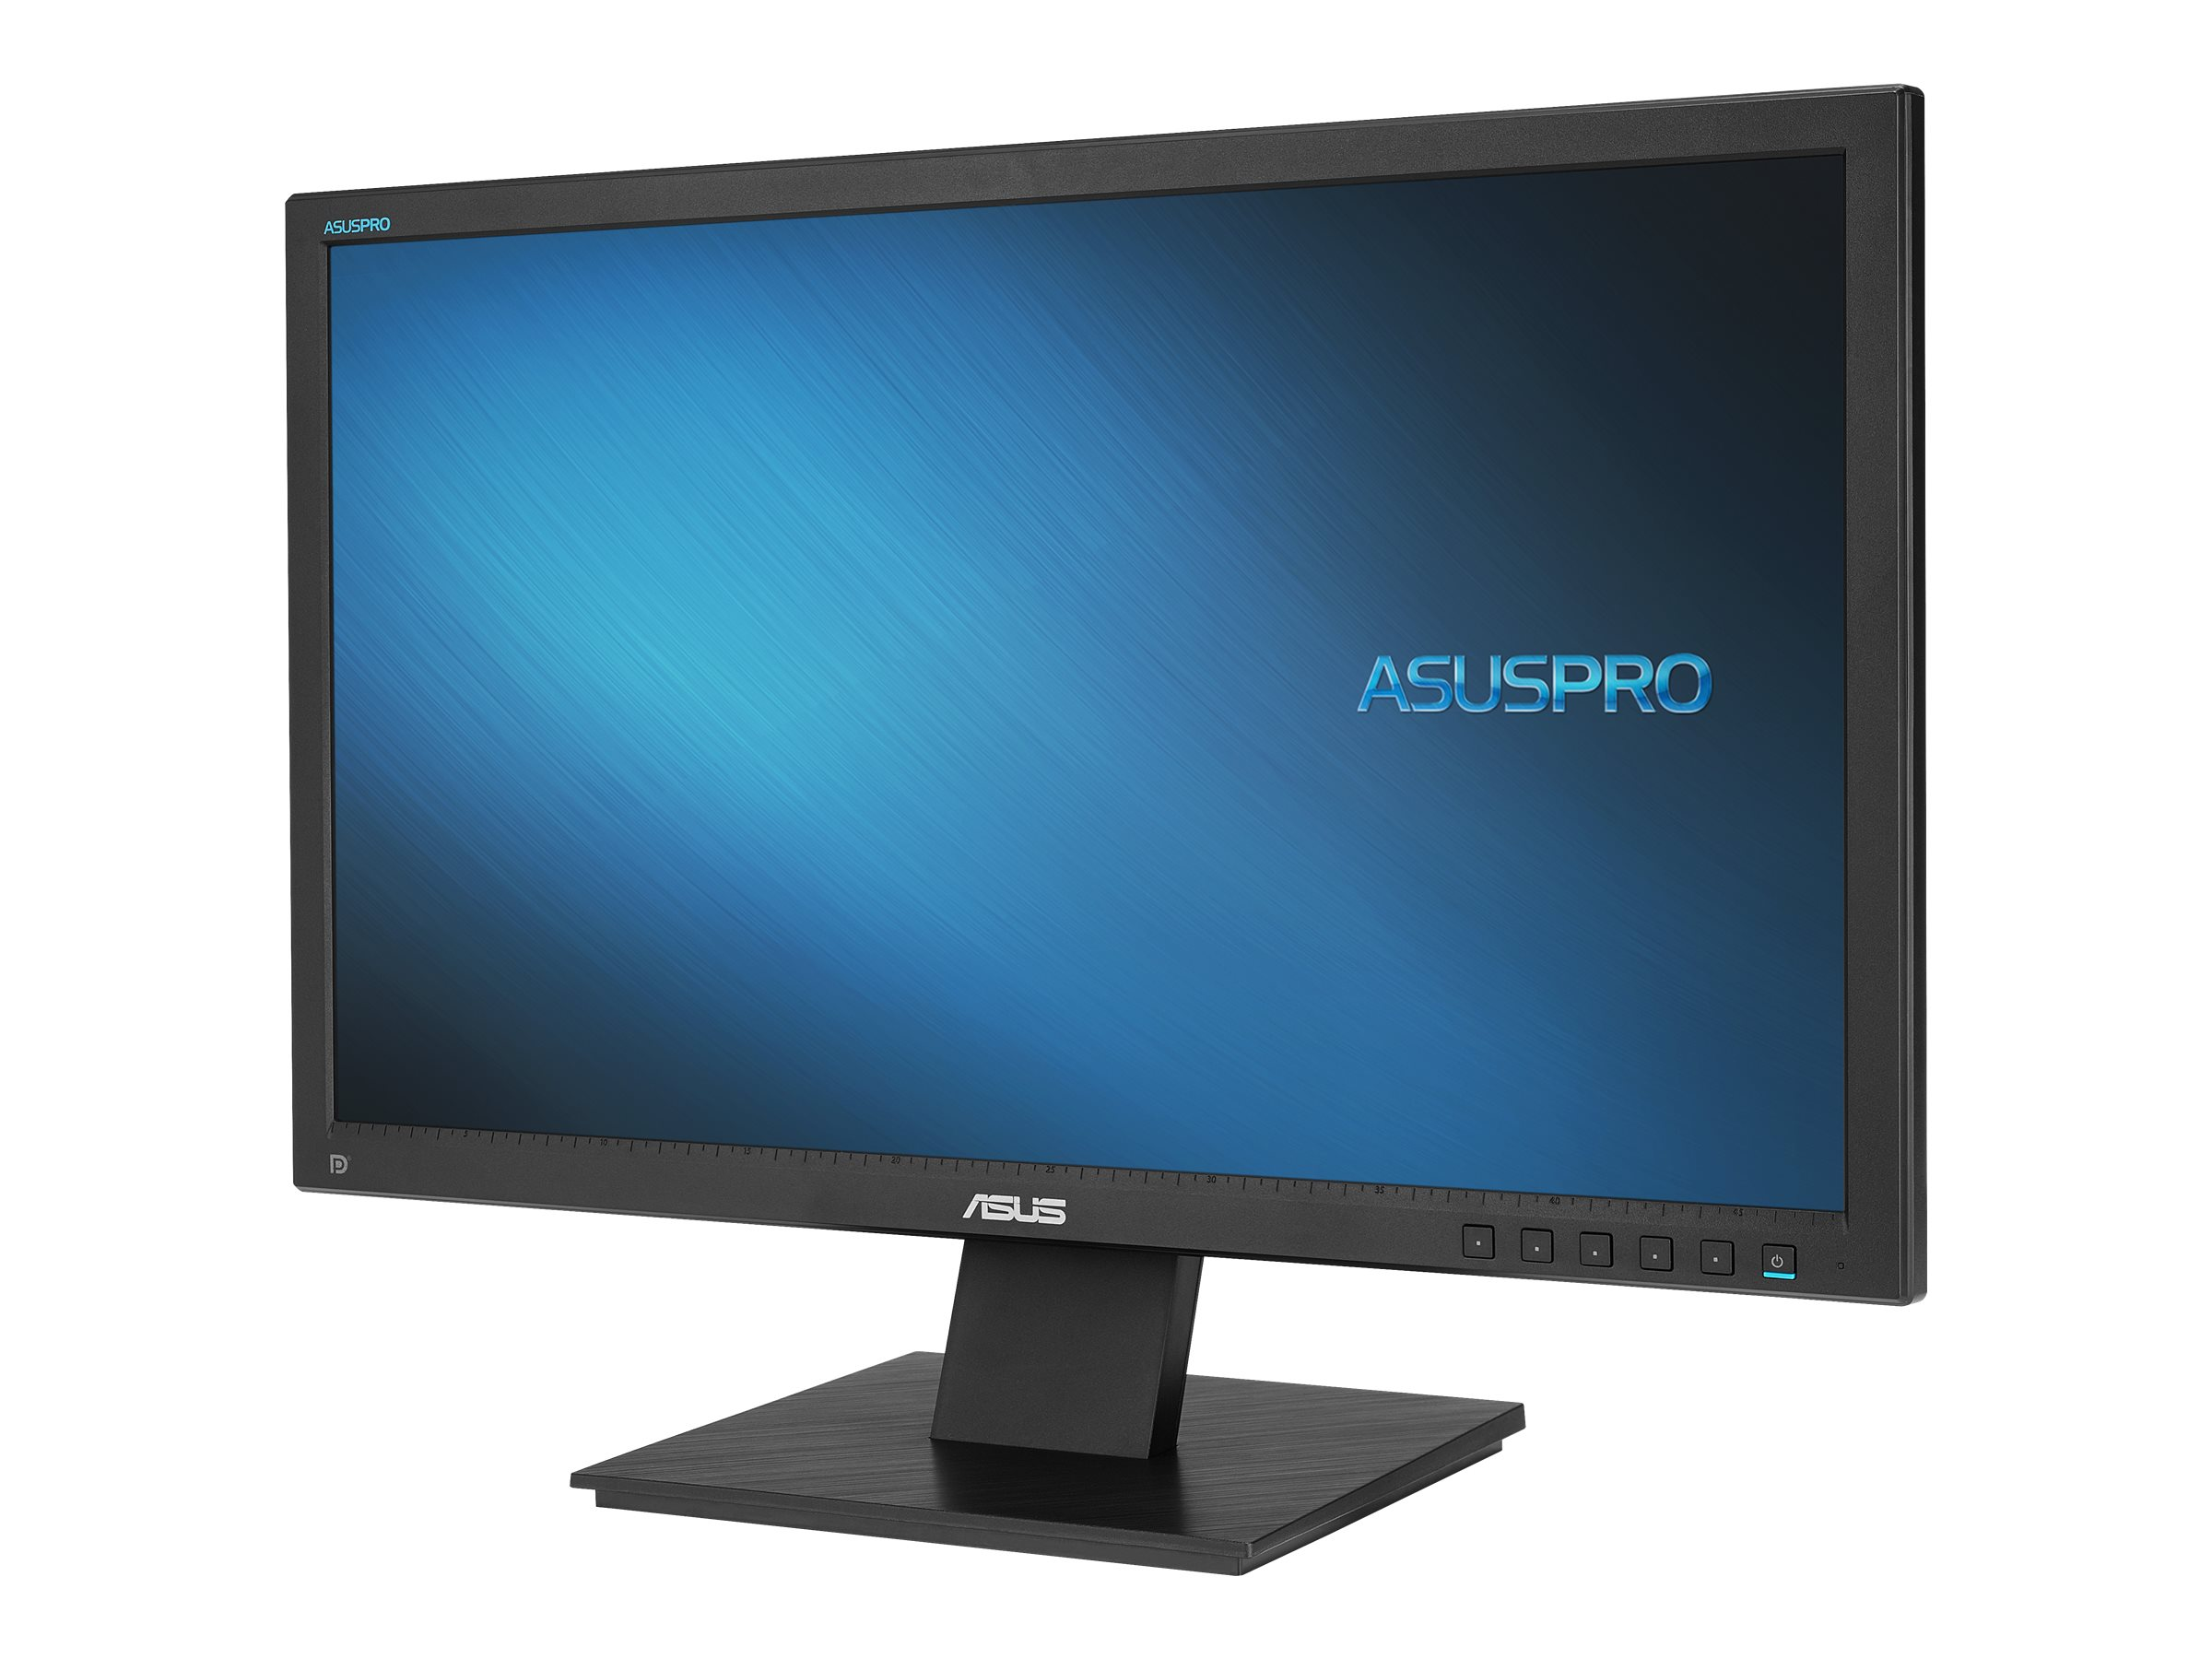 Asus 23 C423AQ Full HD LED-LCD Monitor, Black, C423AQ